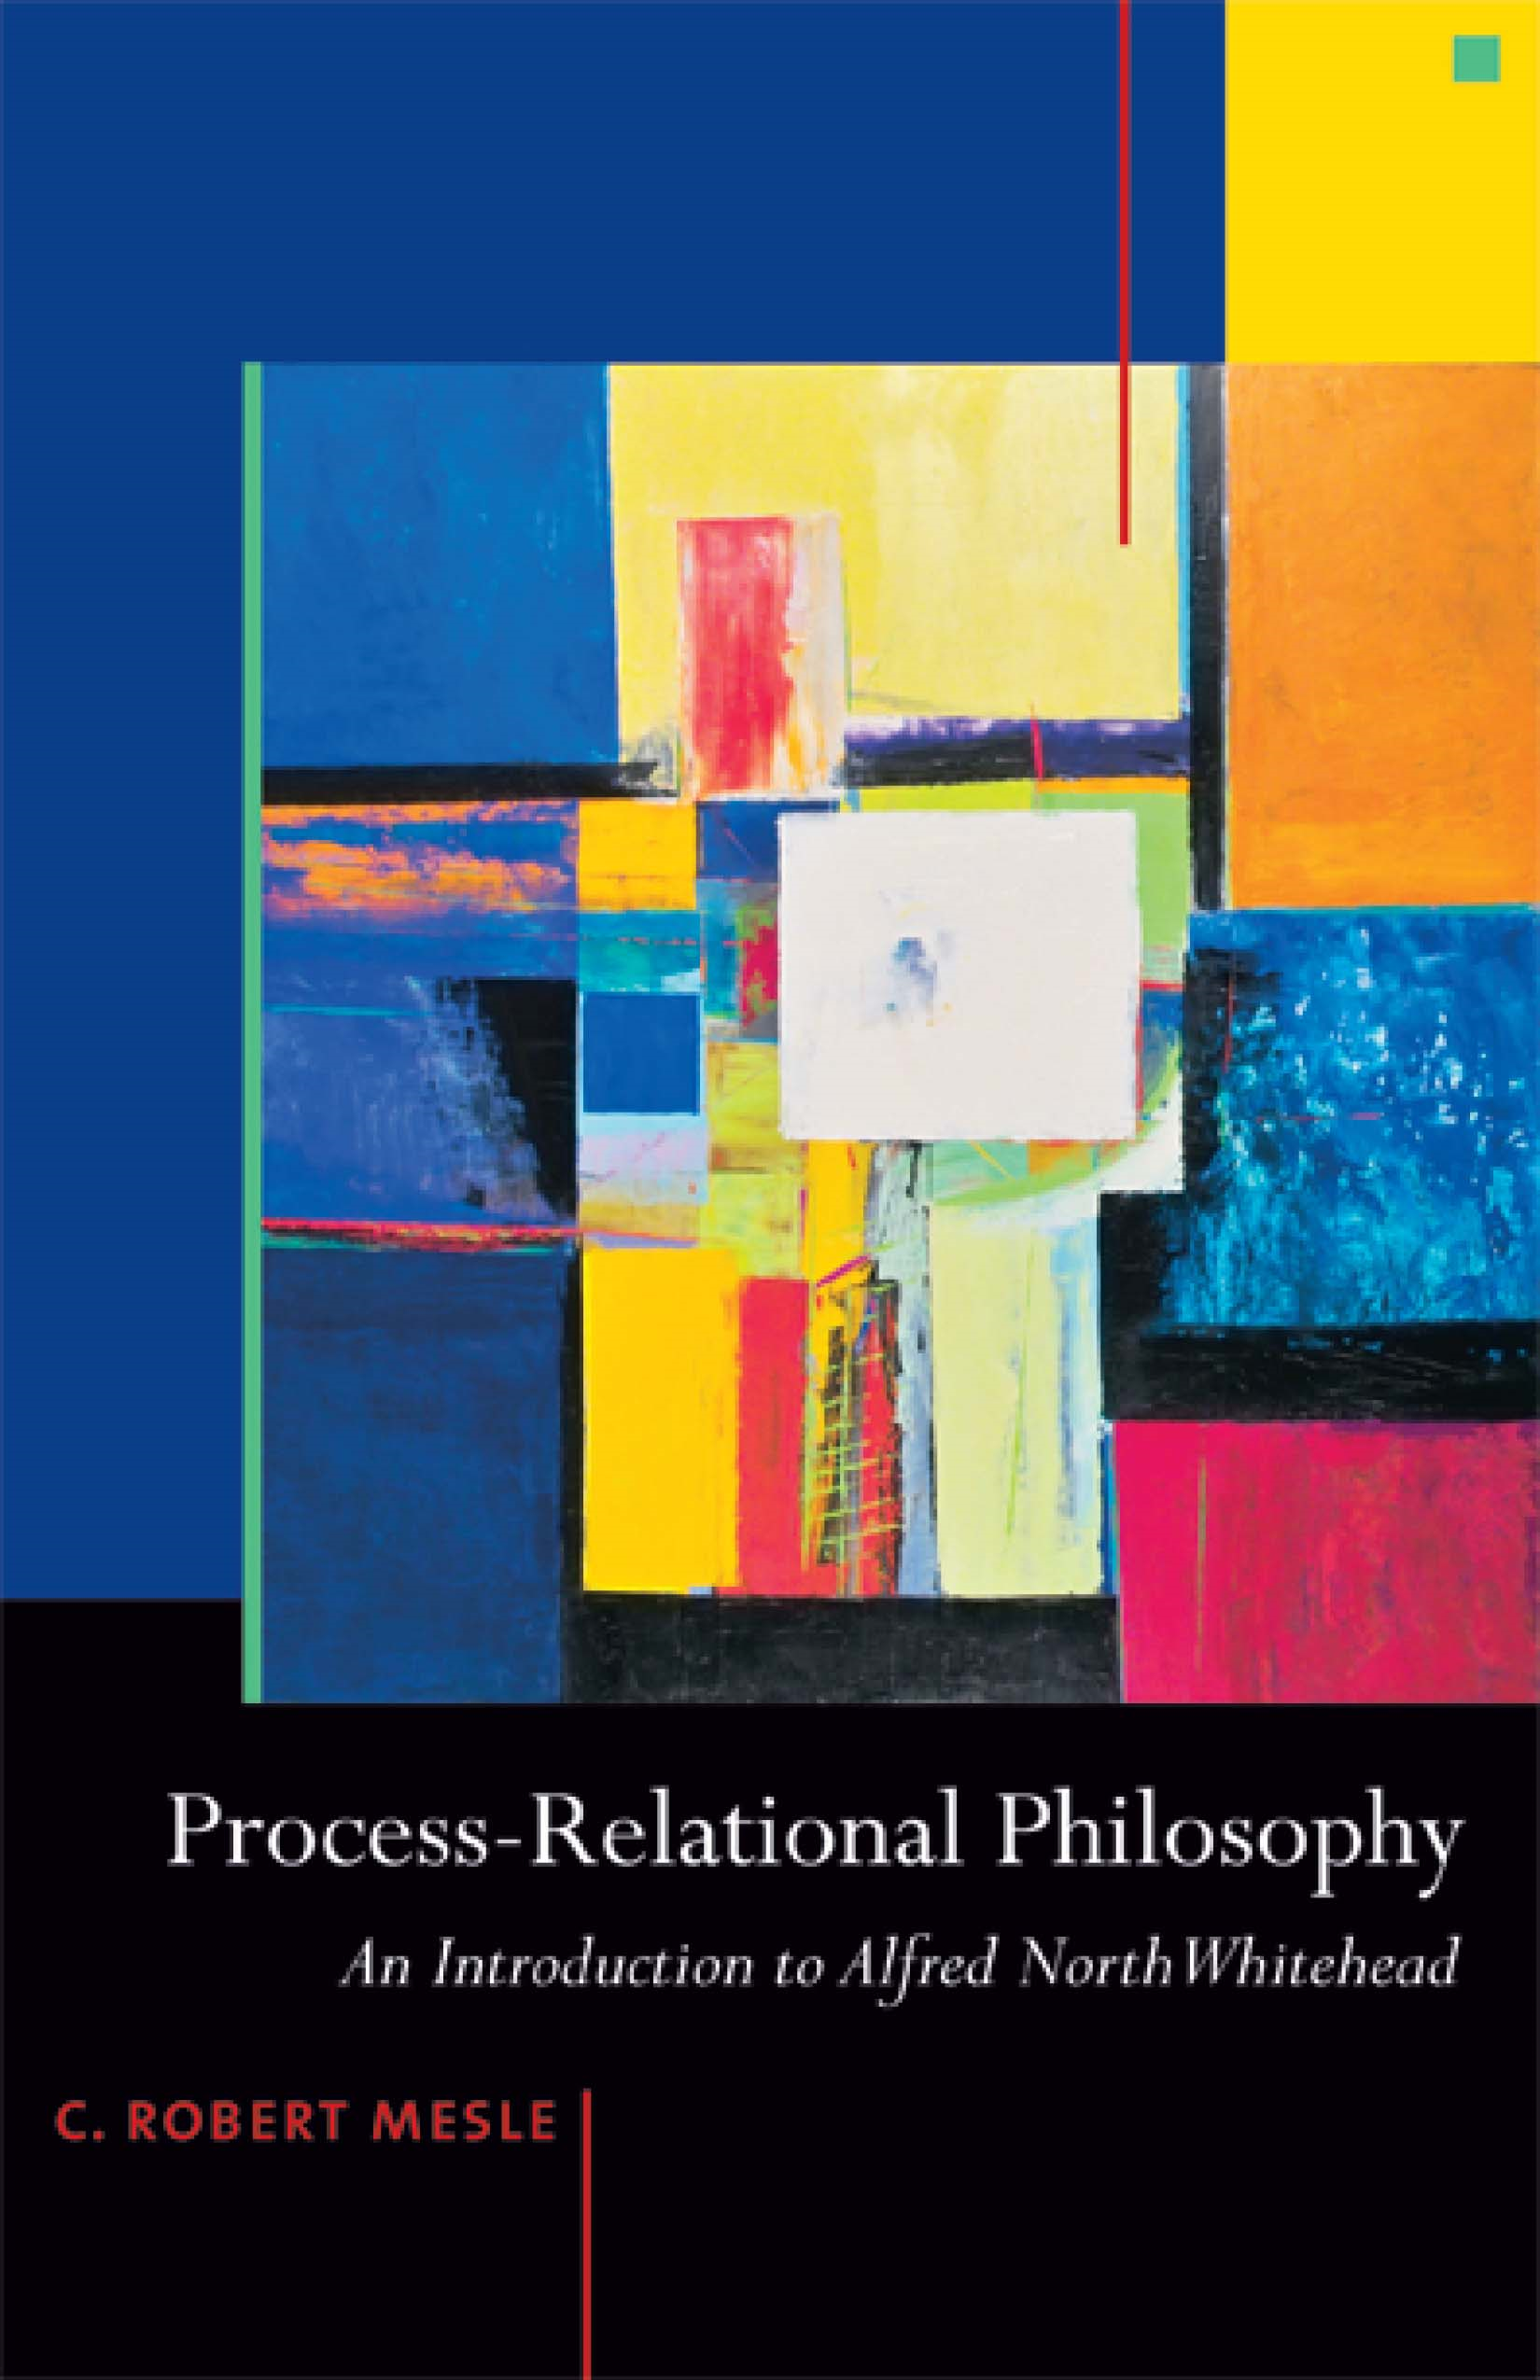 Process-Relational Philosophy: An Introduction to Alfred North Whitehead By: Mesle, C. Robert